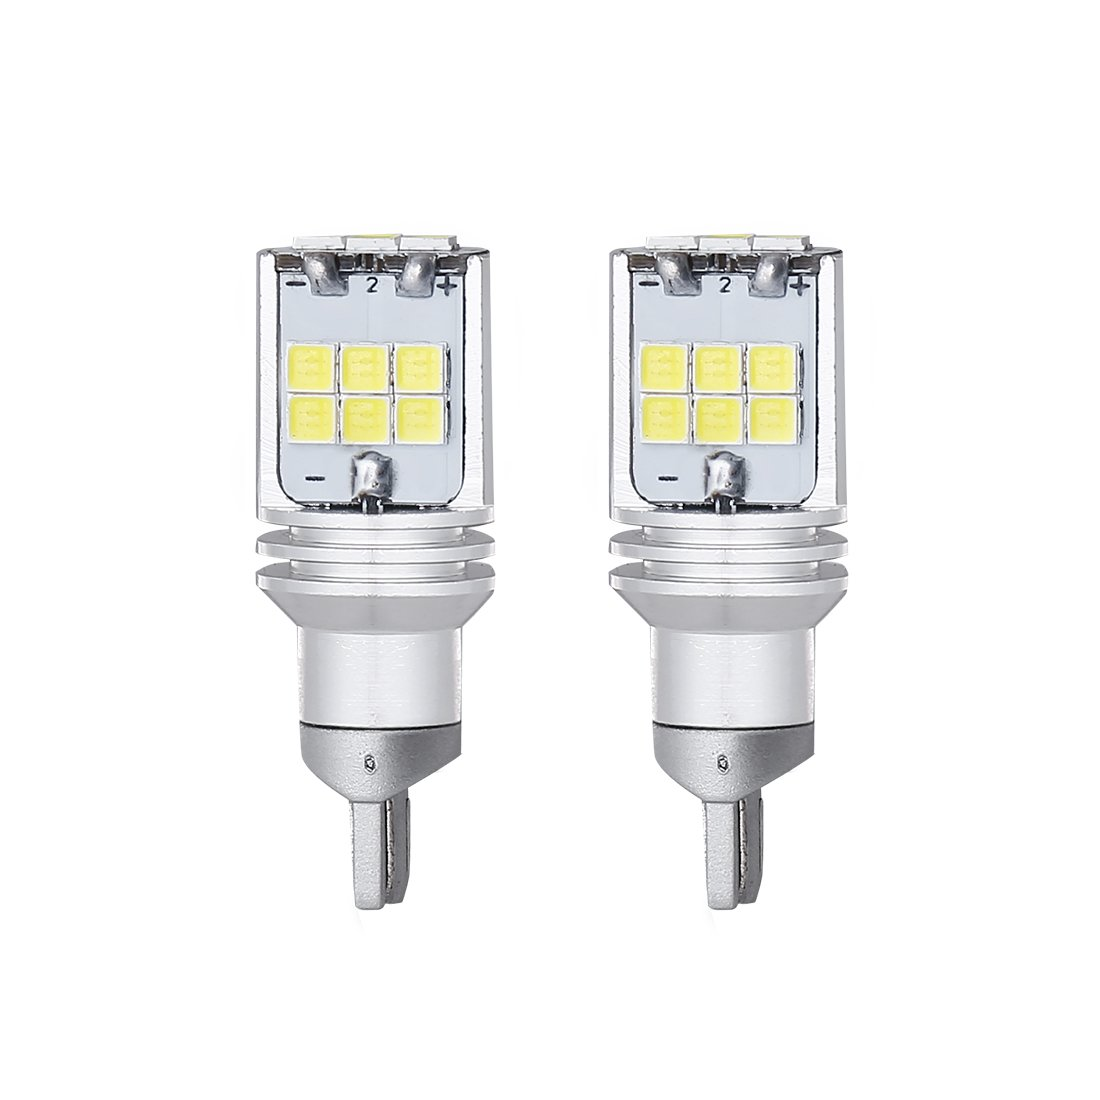 2pcs 1000 lumens Extremely Bright Canbus Error Free 921 912 T10 T15 SMD 4014 45pcs Chipsets LED Bulbs For Backup Reverse Lights, Xenon White 6000K CBT15-45D-4014W-2 SUPAREE